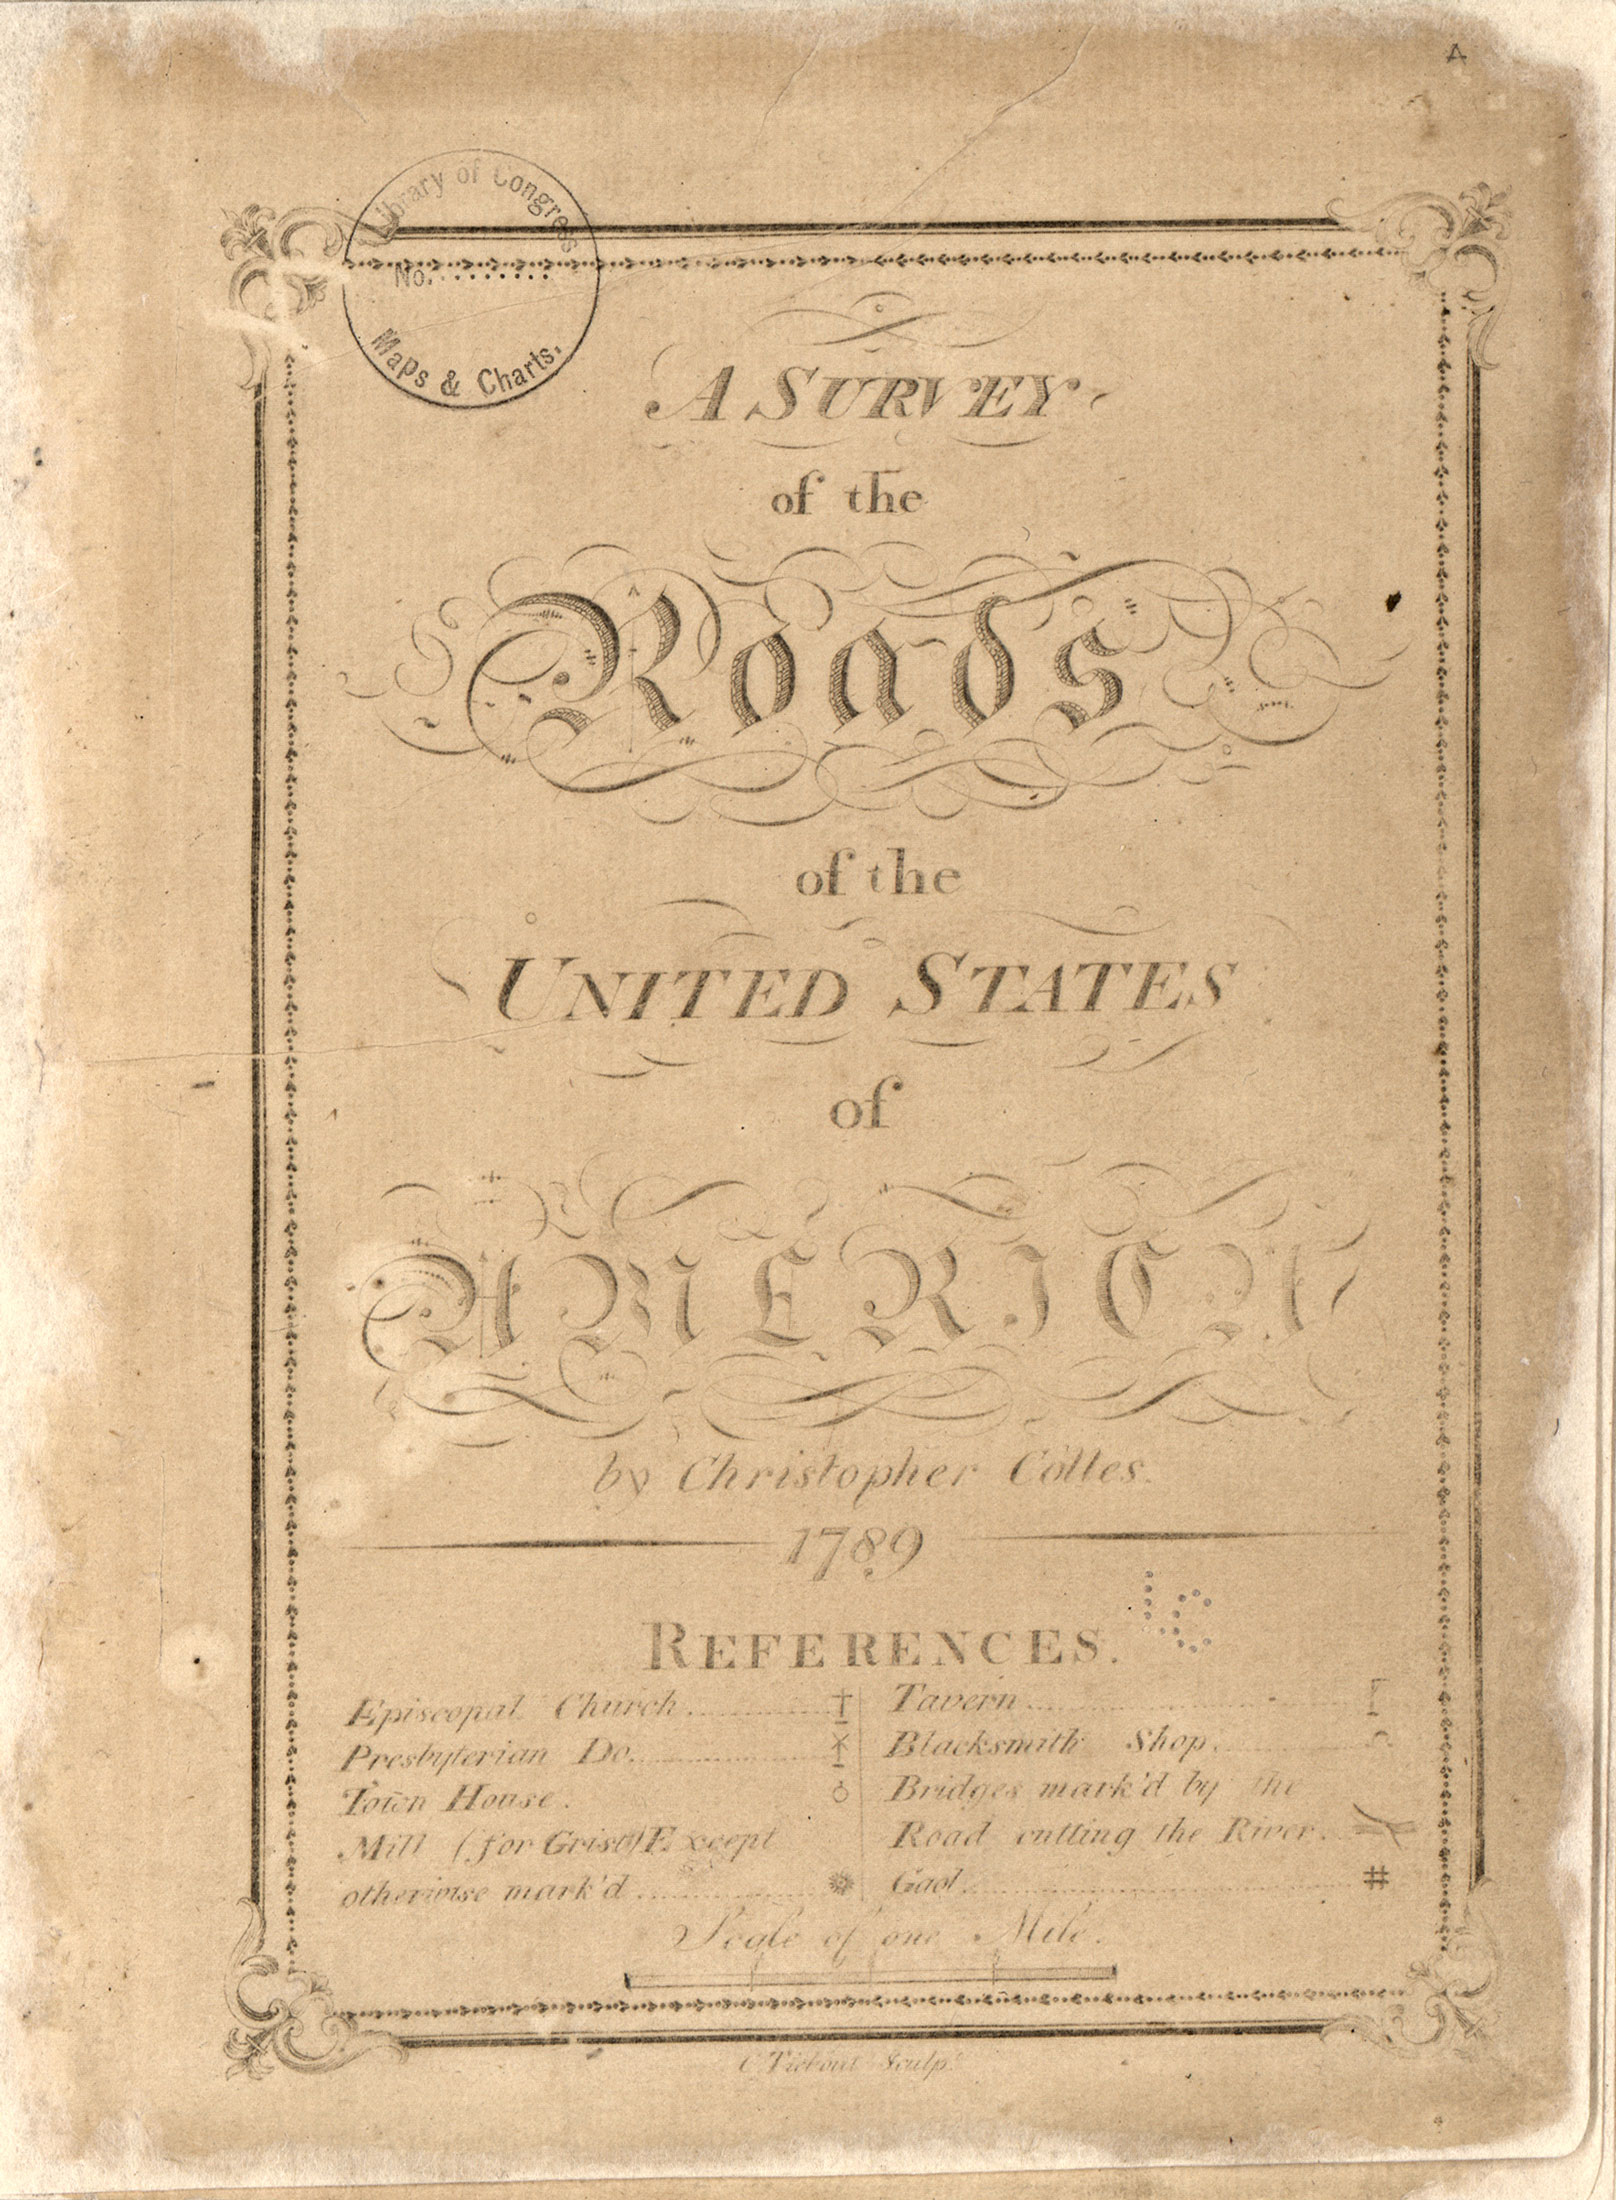 Survey of the roads of the united states of America circa 1789